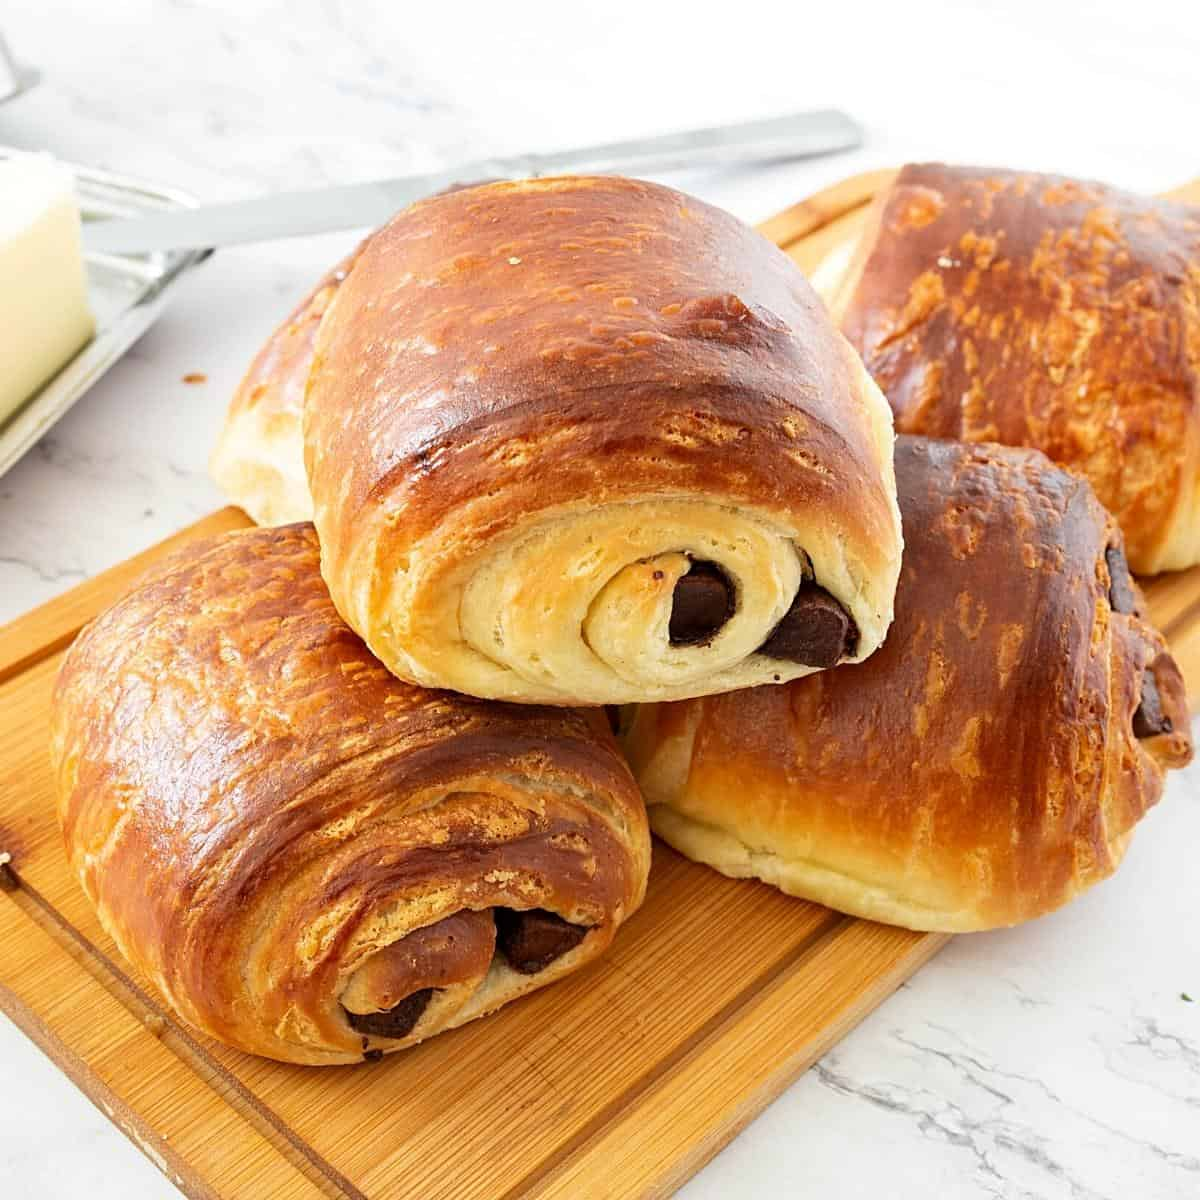 A stack of croissants filled with chocolate on a wooden board.